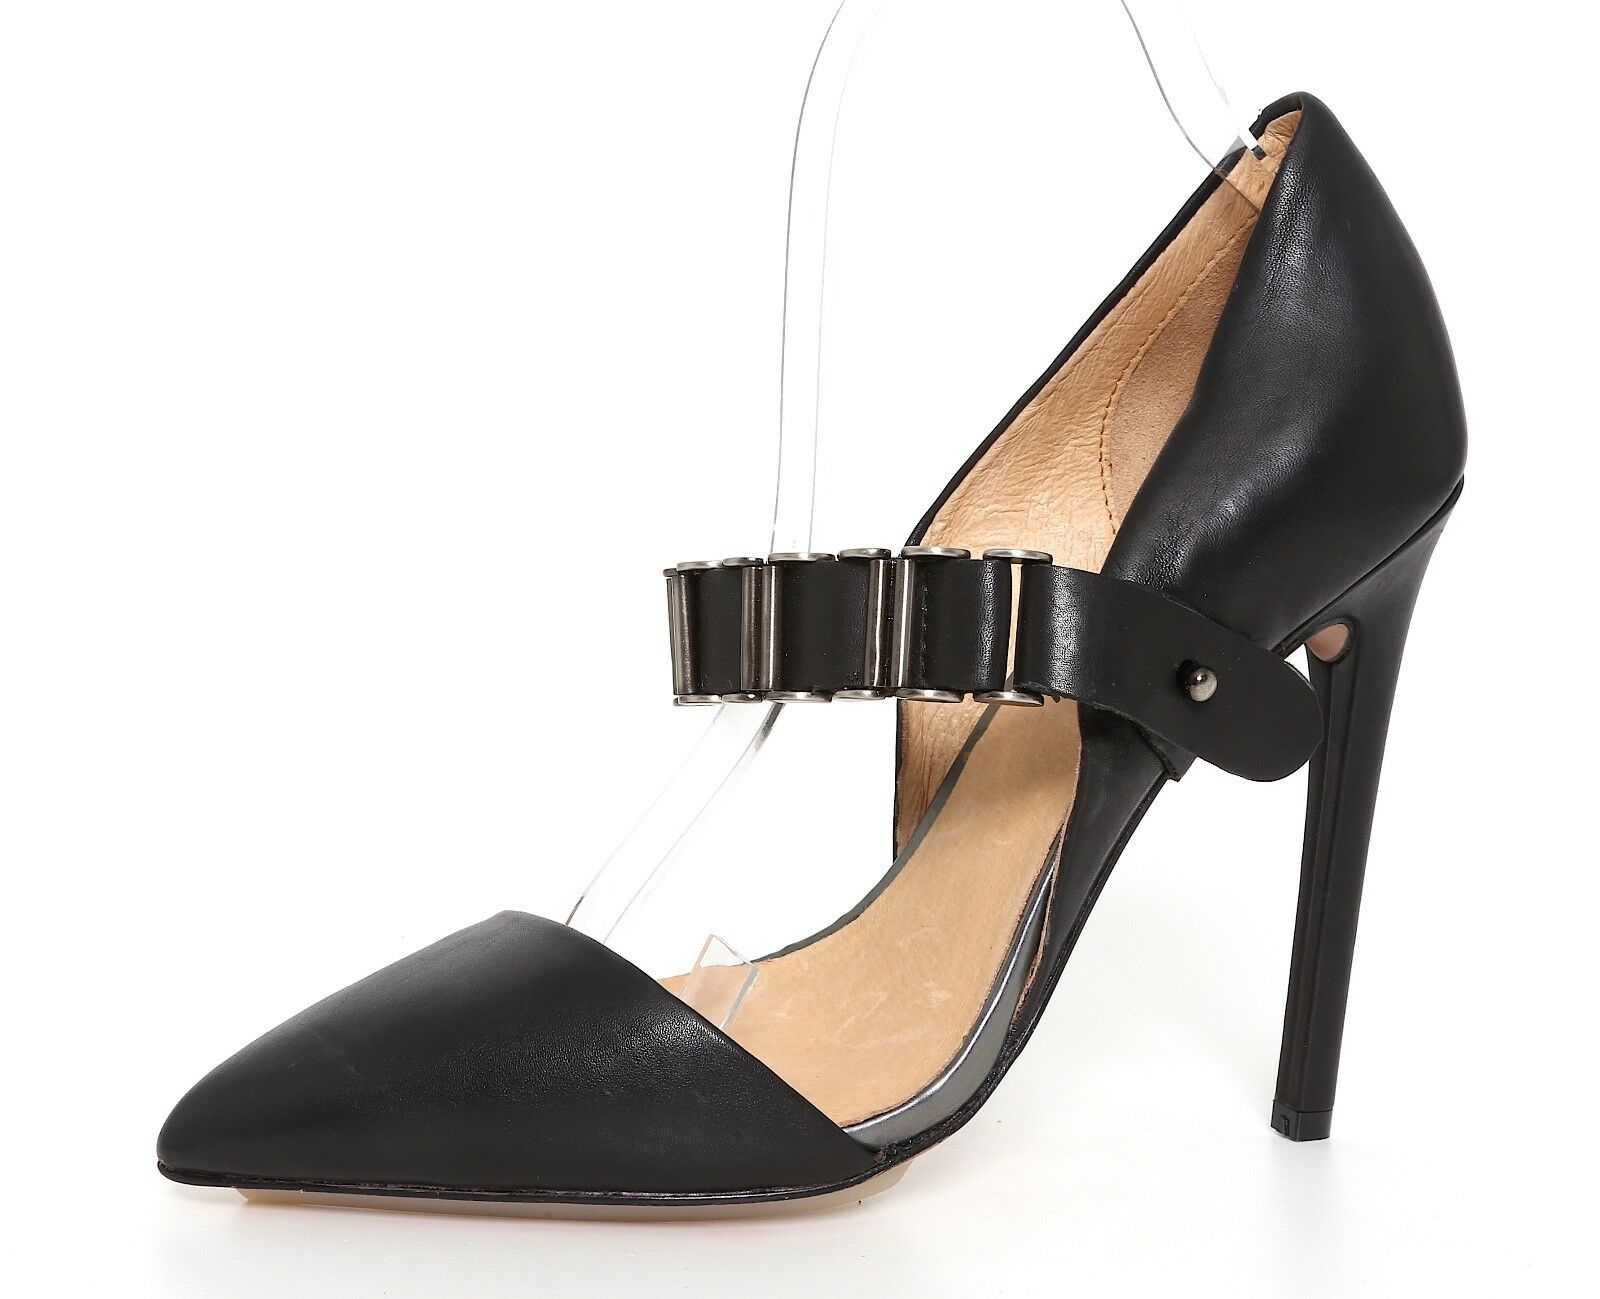 Felice shopping L.A.M.B. Tyna Tyna Tyna Chain Leather Pump nero donna Sz 8.5 M 1136  consegna veloce